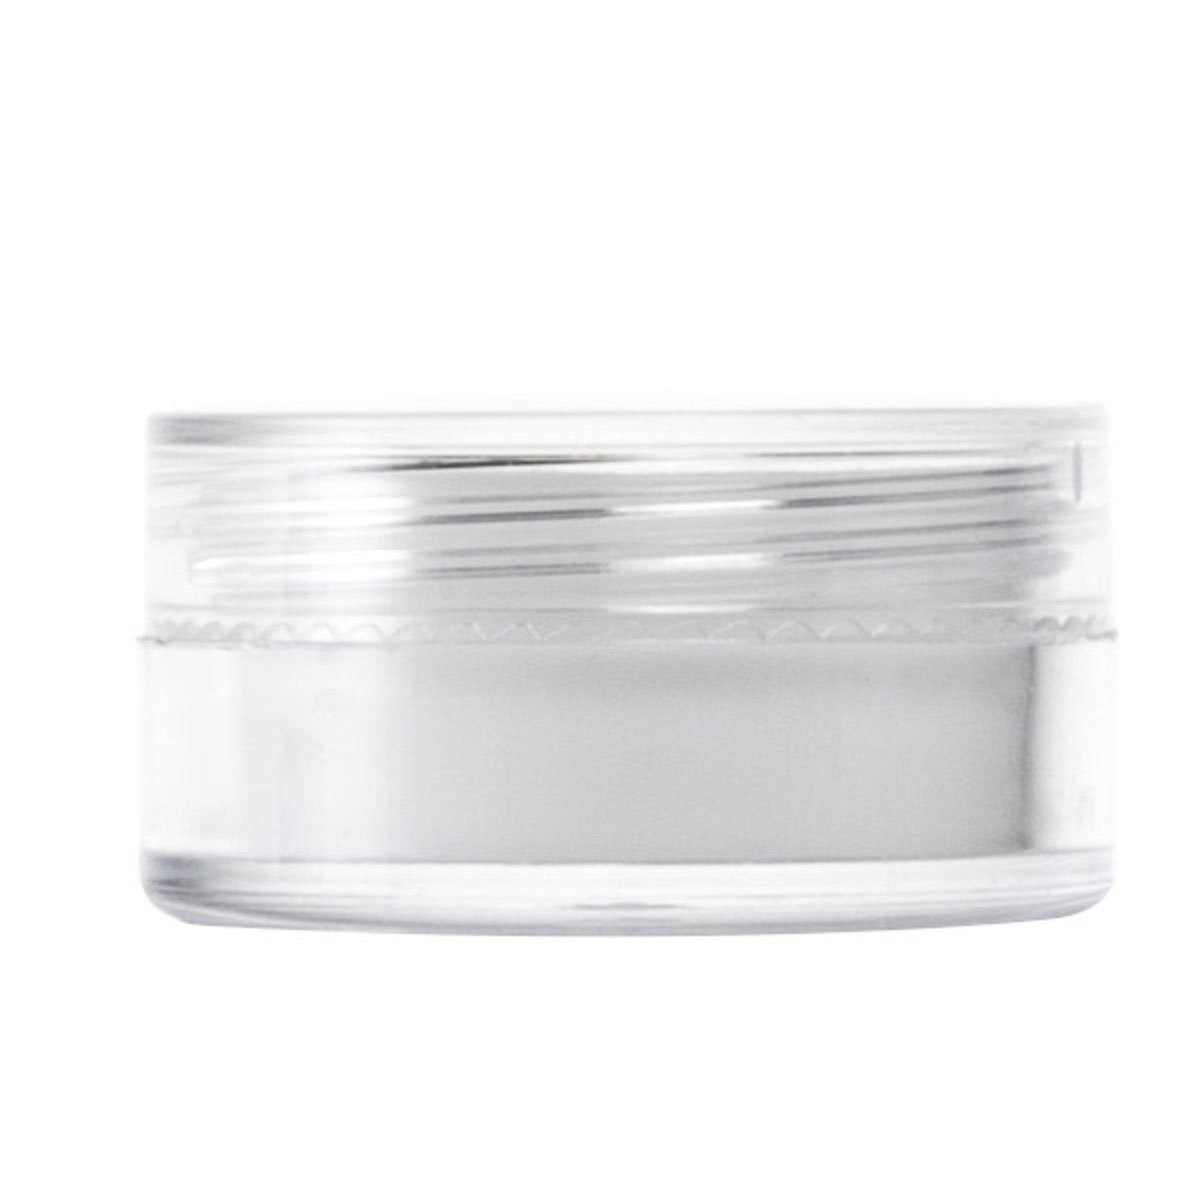 10ml Polystyrene Concentrate Container w/ Silicone Insert 500 Qty.)